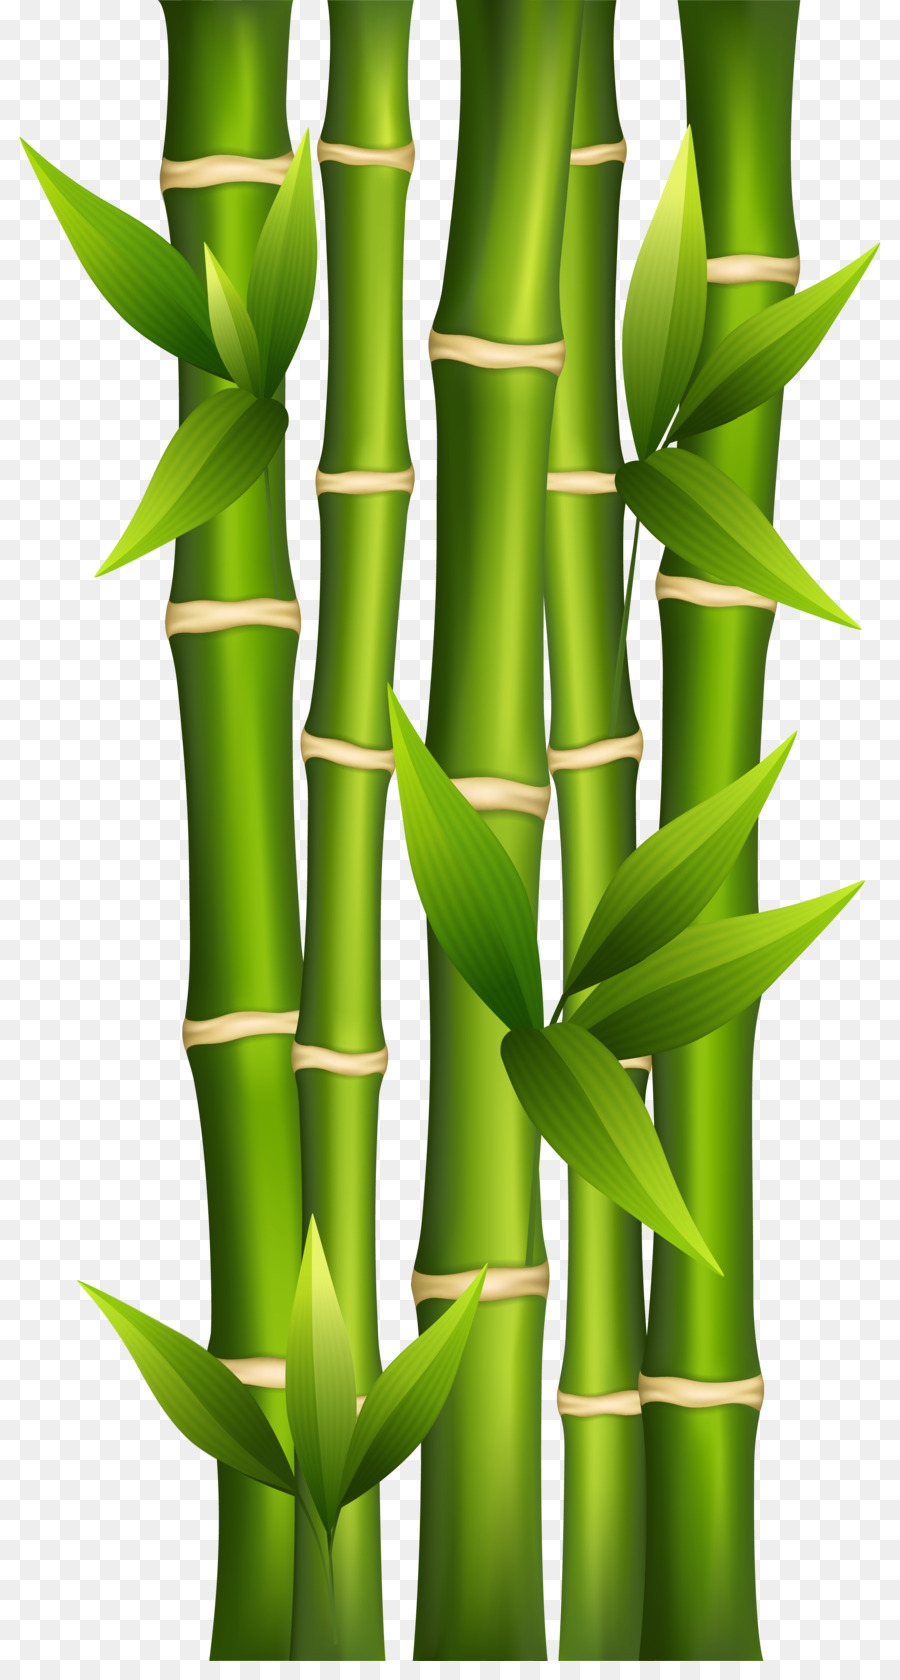 Banner kisspng com lce. Bamboo clipart bamboo shoot